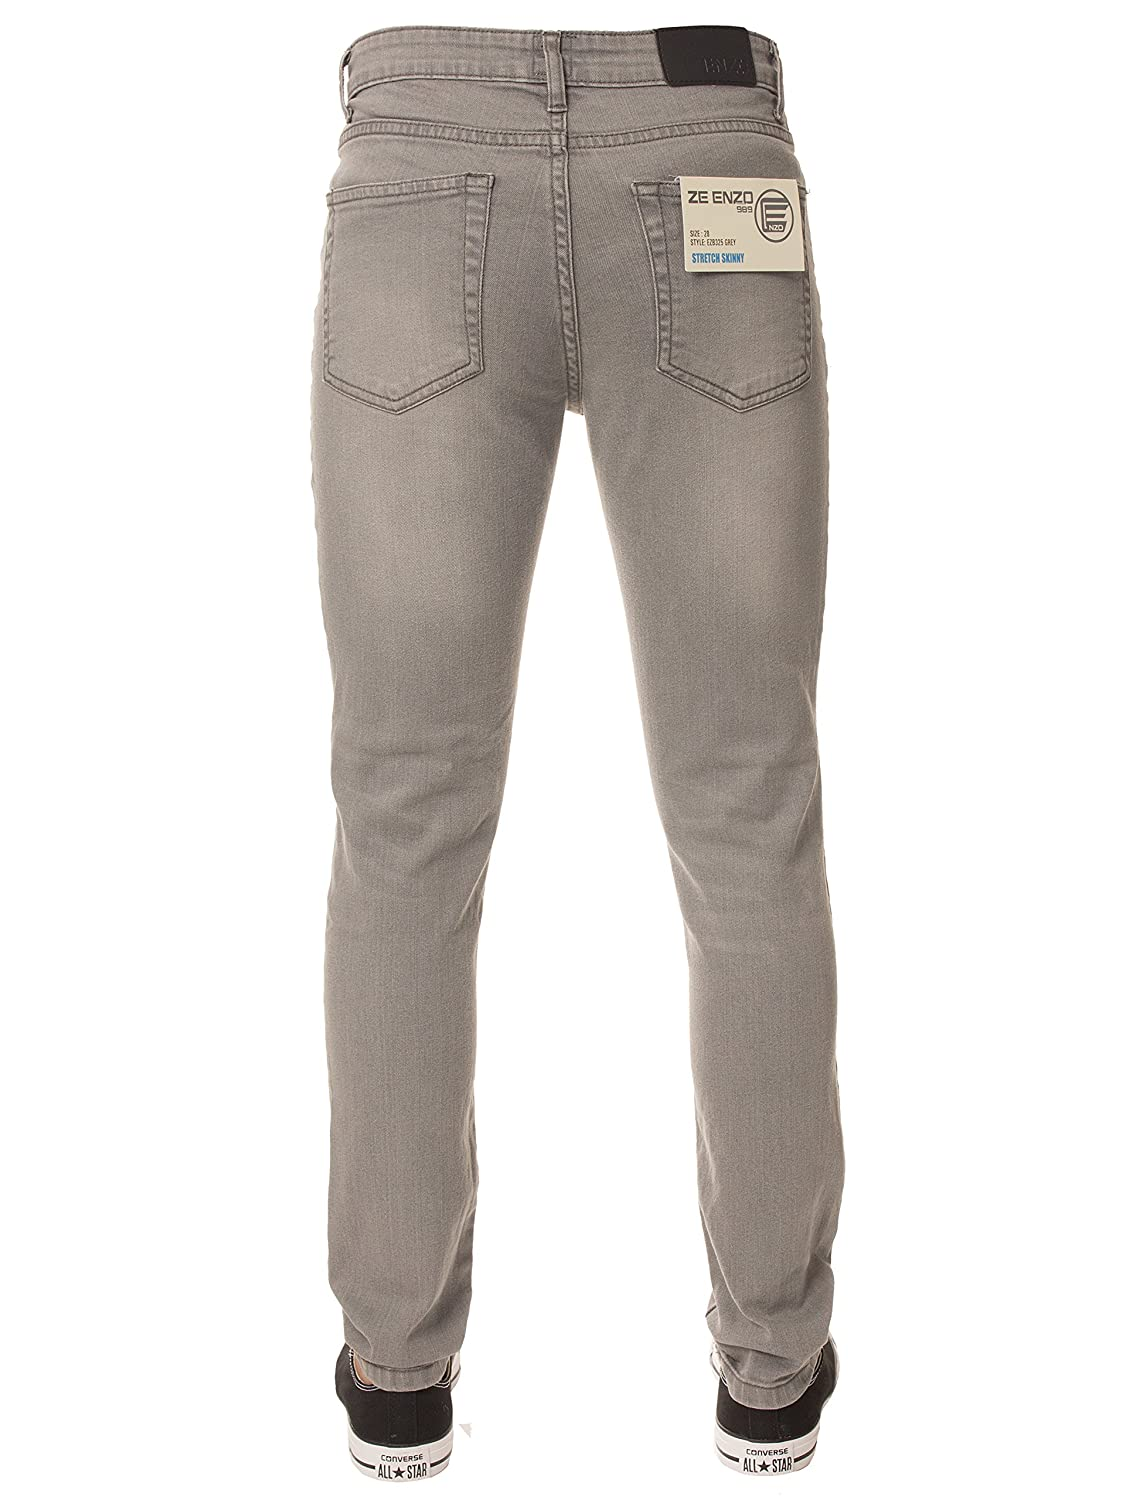 91876f805965 New ENZO Boys Designer Basic Chino Jeans Skinny Stretch Fit Ages 9 - 15   Amazon.co.uk  Clothing